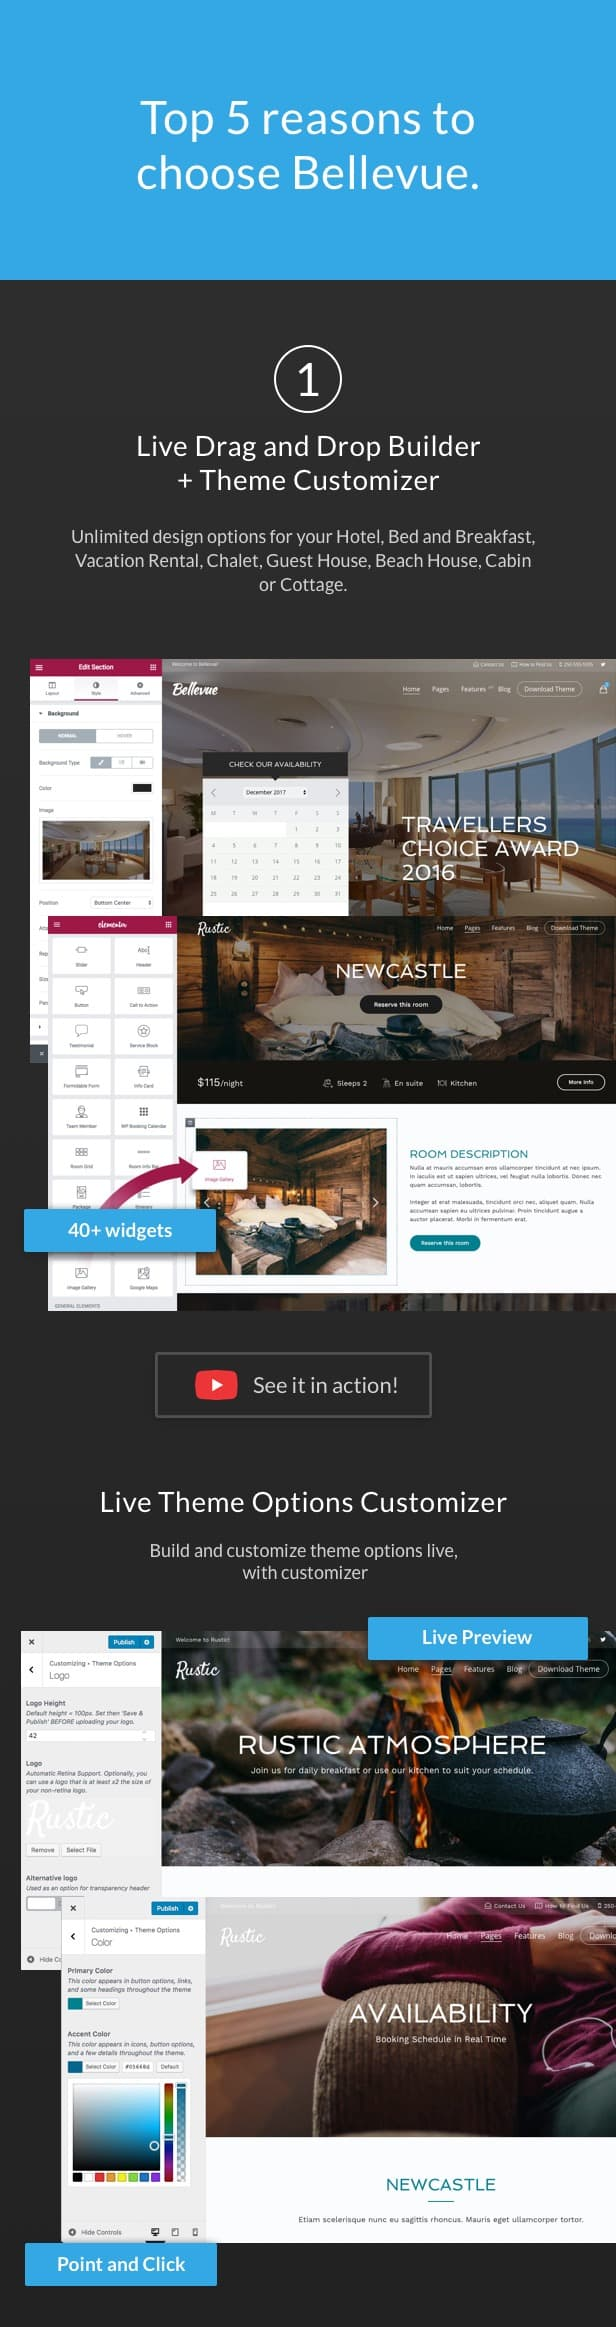 Hotel + Bed and Breakfast Booking Calendar Theme | Bellevue - 2